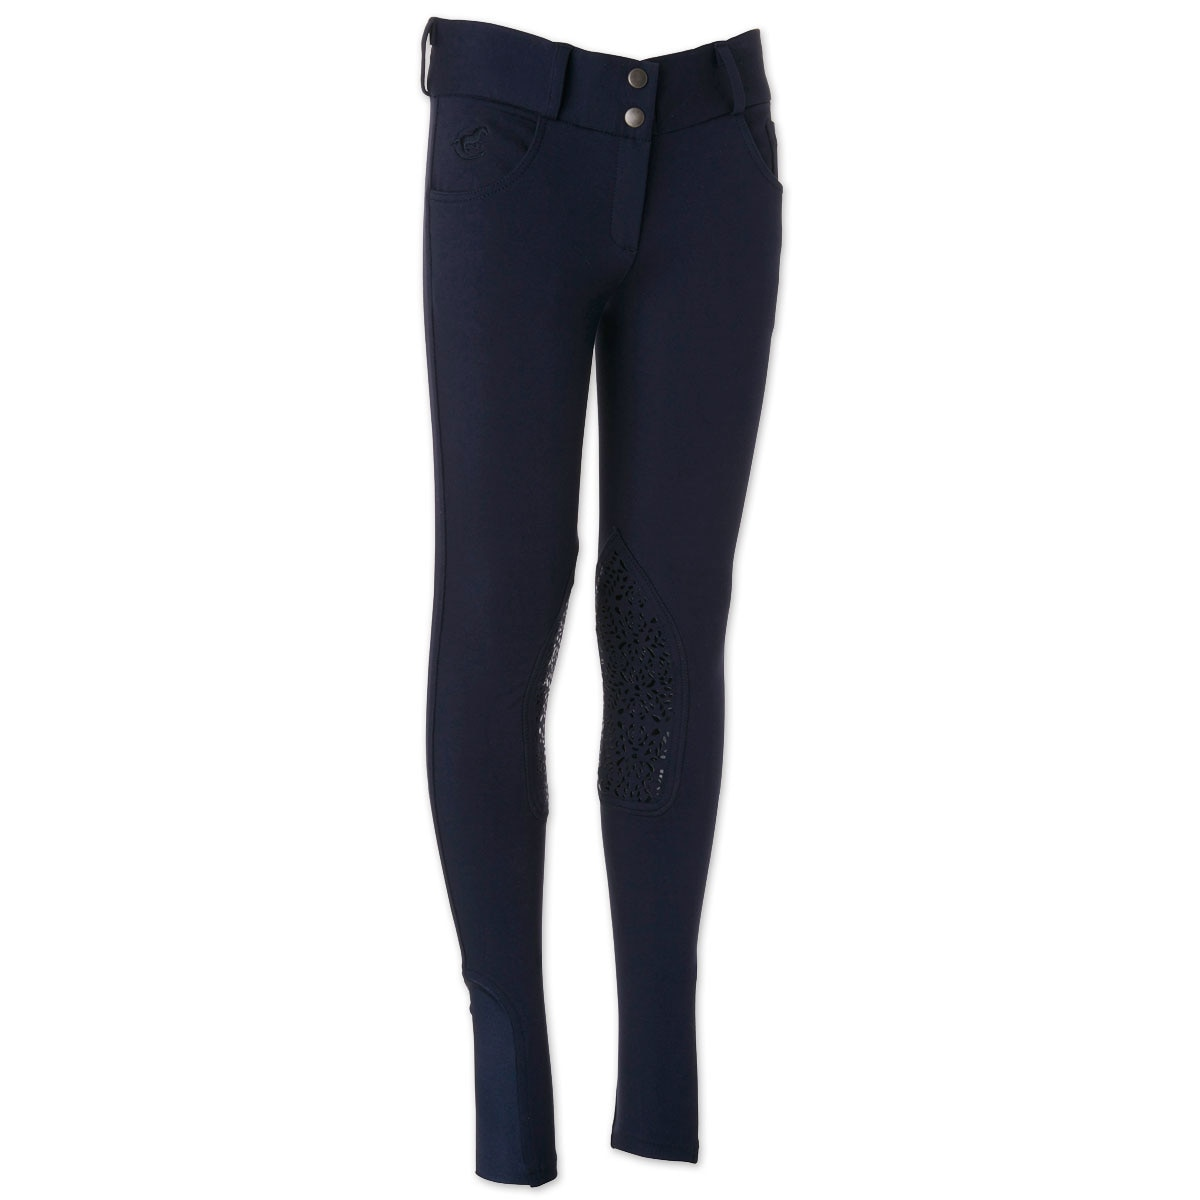 Piper Knit Breeches by SmartPak - Girls Knee Patch